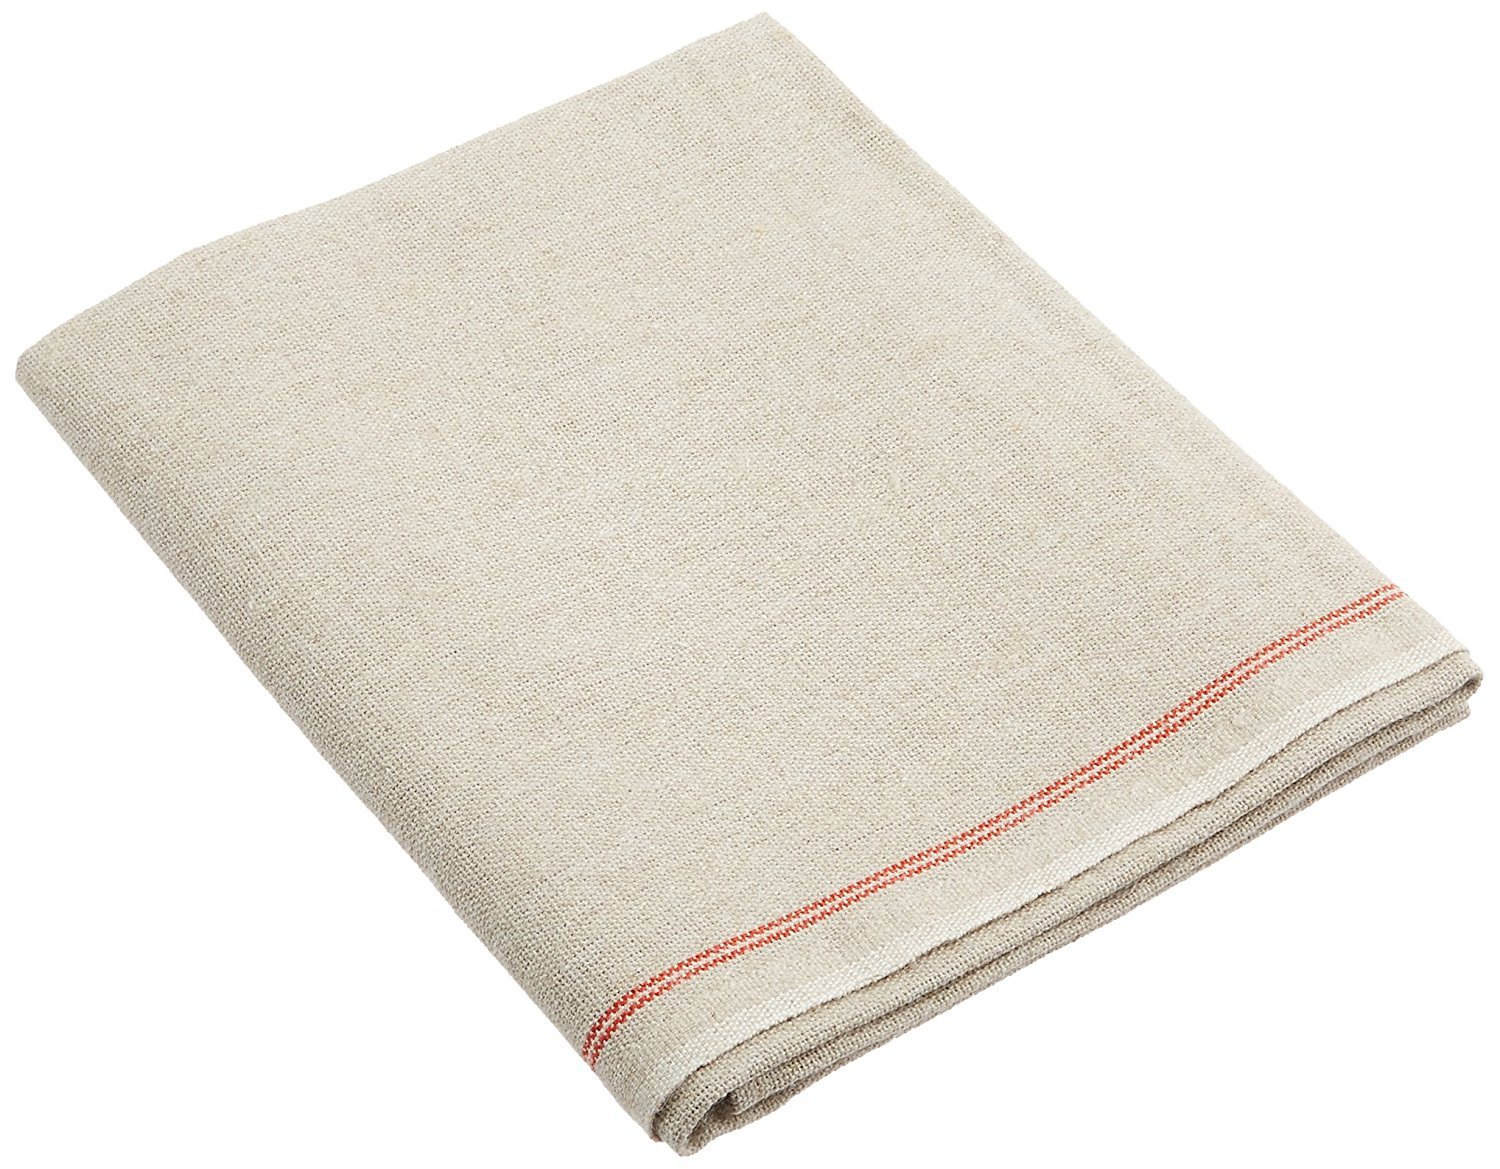 BrotformDotCom Professional Bakers Couche - 100% Pure French Flax Linen Proofing Cloth 26 x 24 Inch, the Original Red Stripe Signature Couche JL-00501